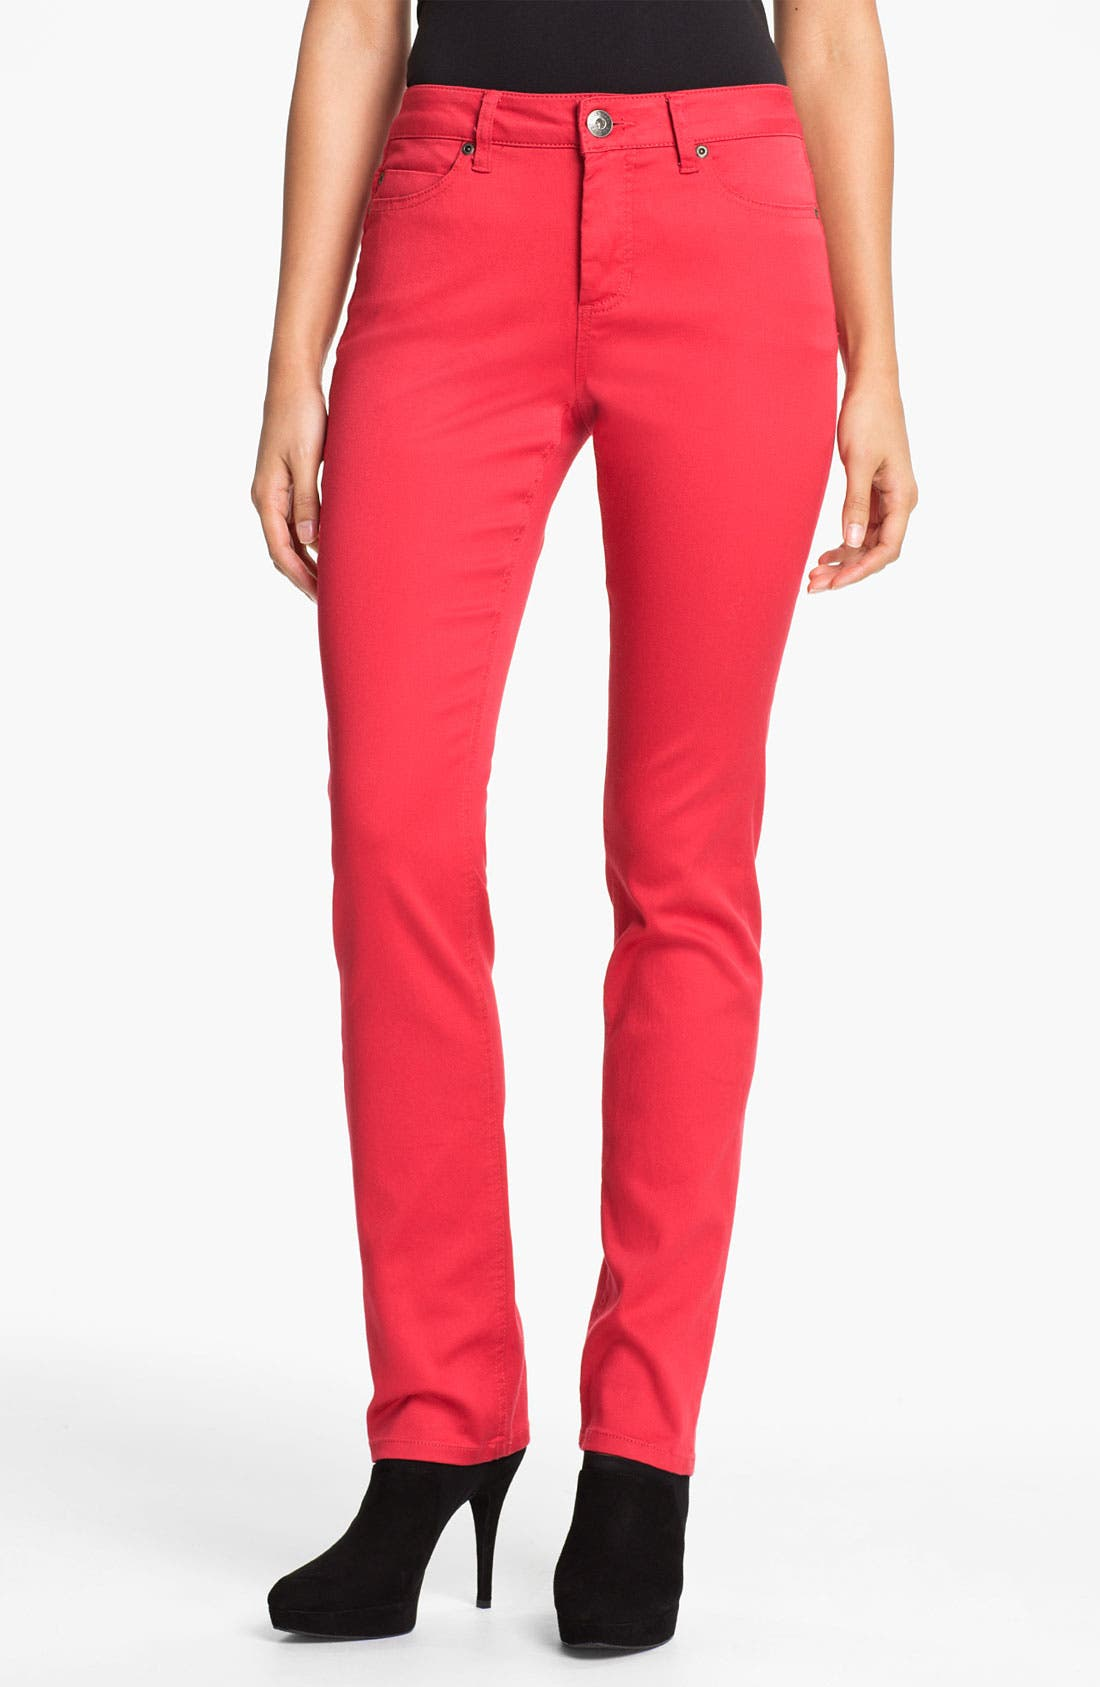 Alternate Image 1 Selected - Liverpool Jeans Company 'Sadie' Colored Straight Leg Stretch Jeans